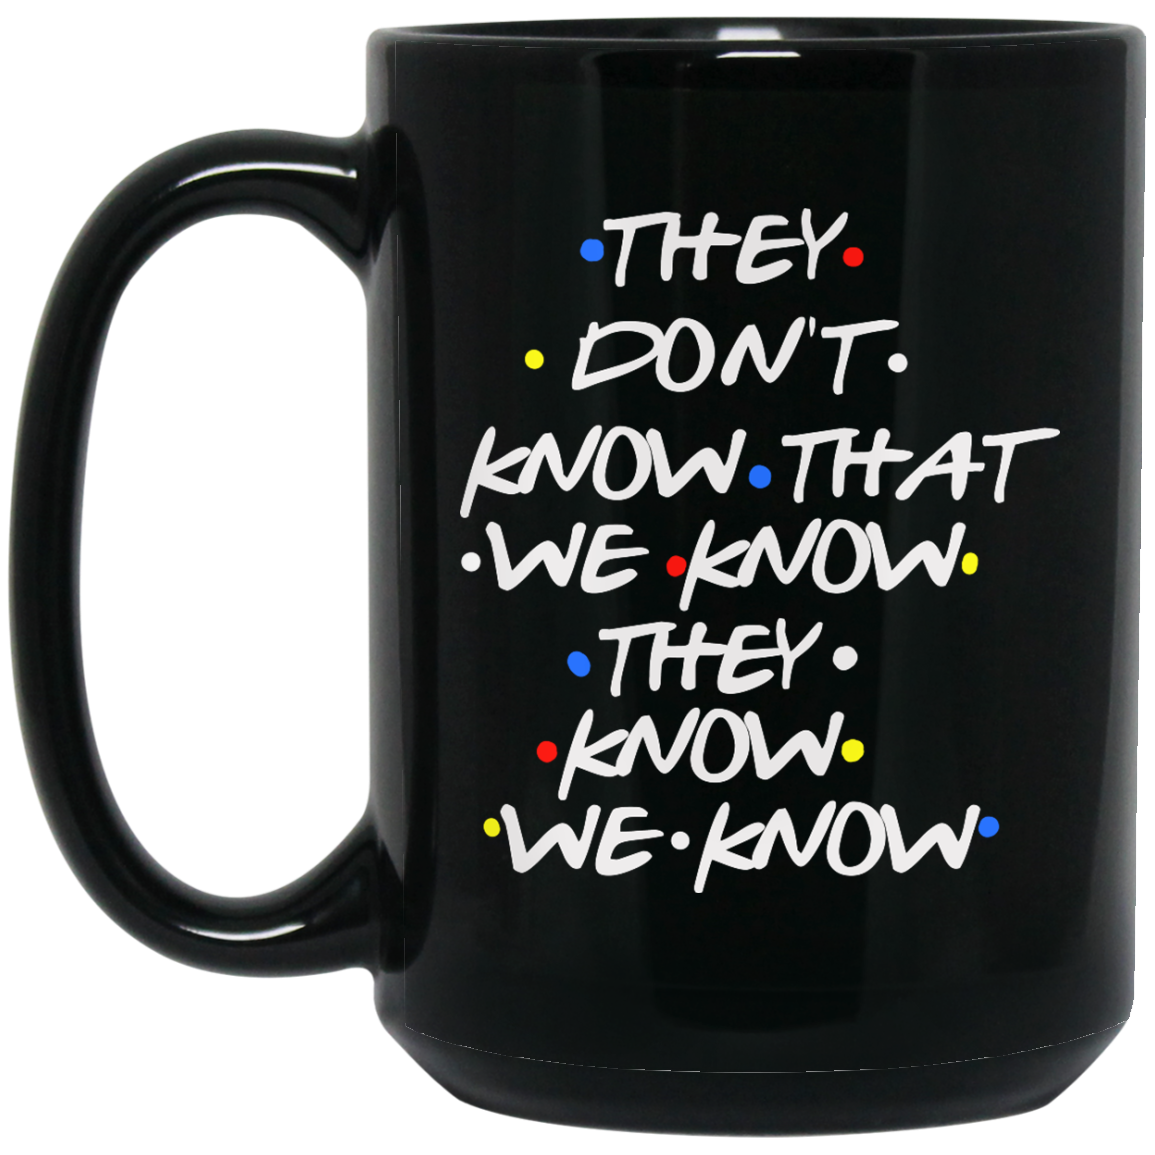 Friends: they don't know that we know they know we know mugs